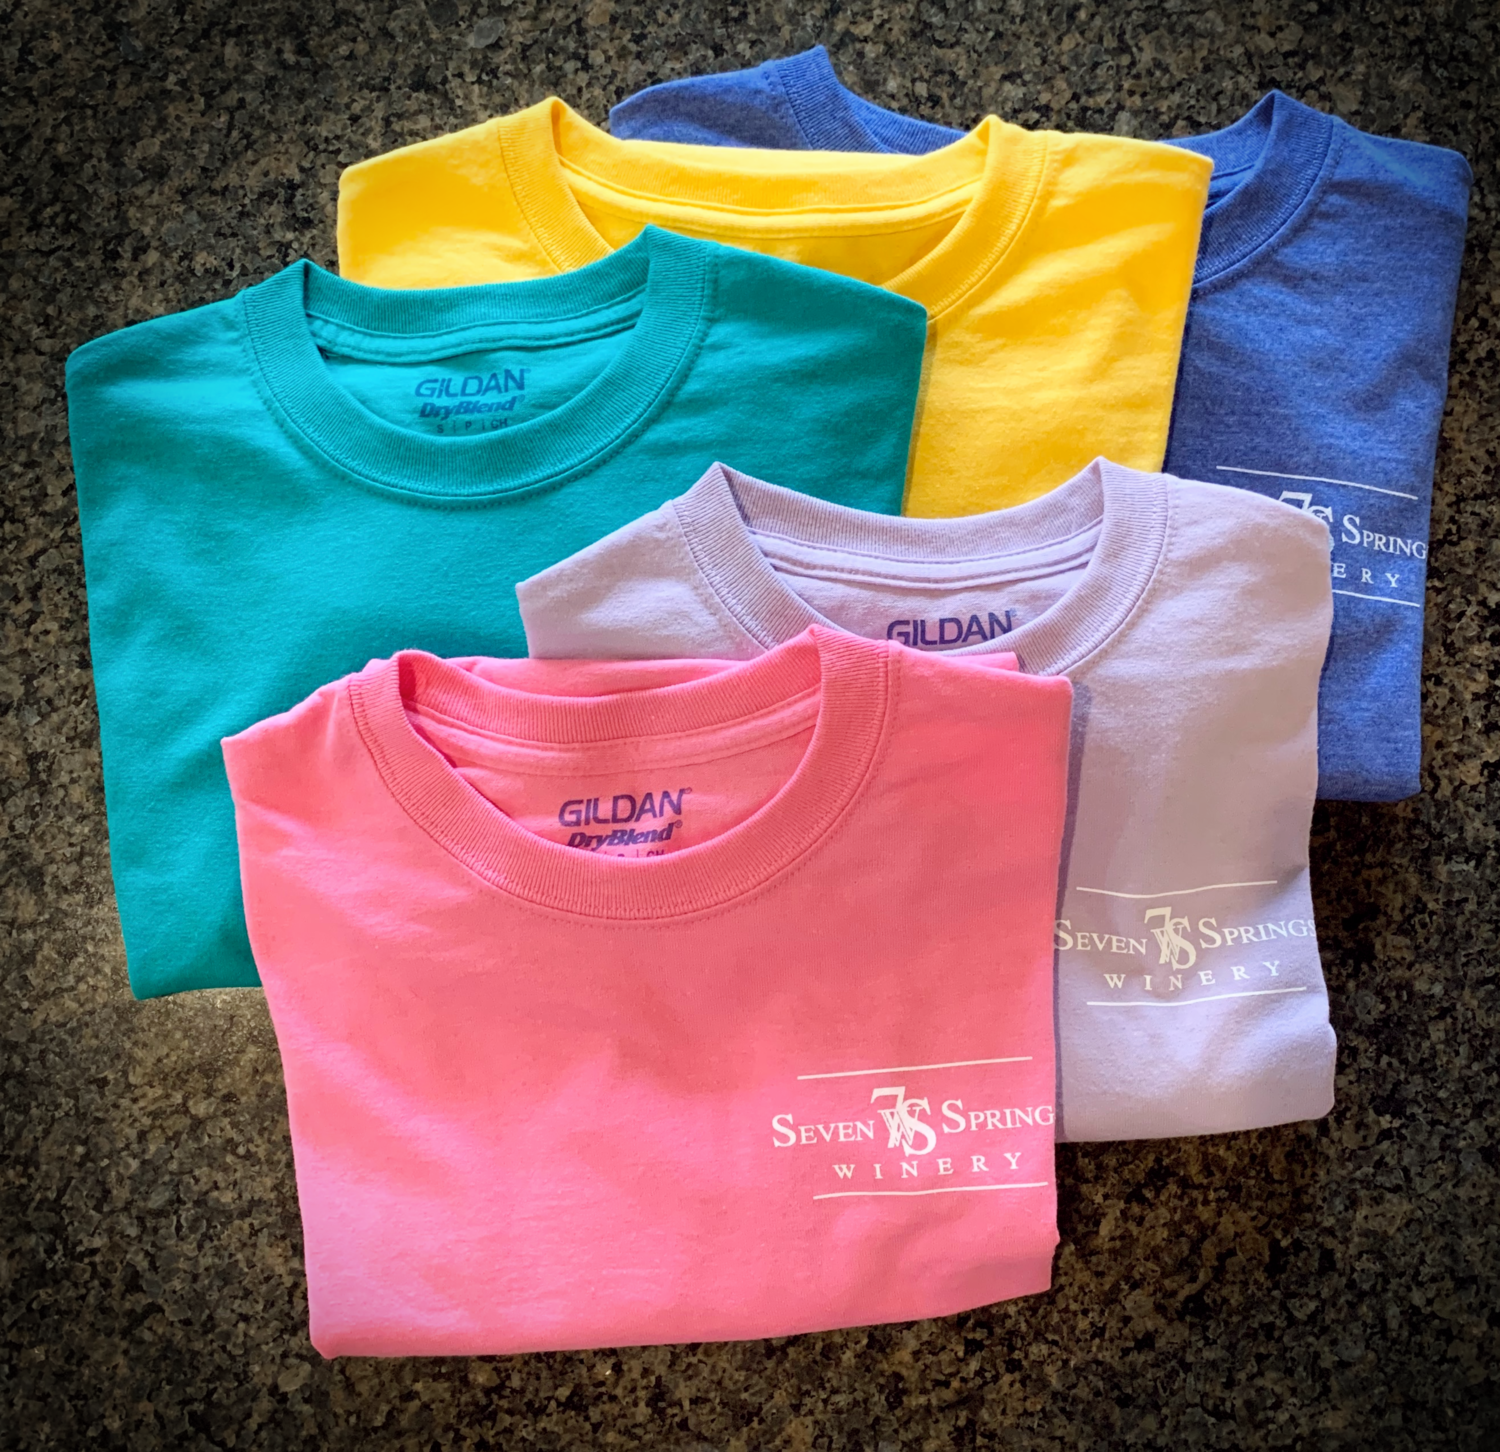 Seven Springs Winery T-Shirt